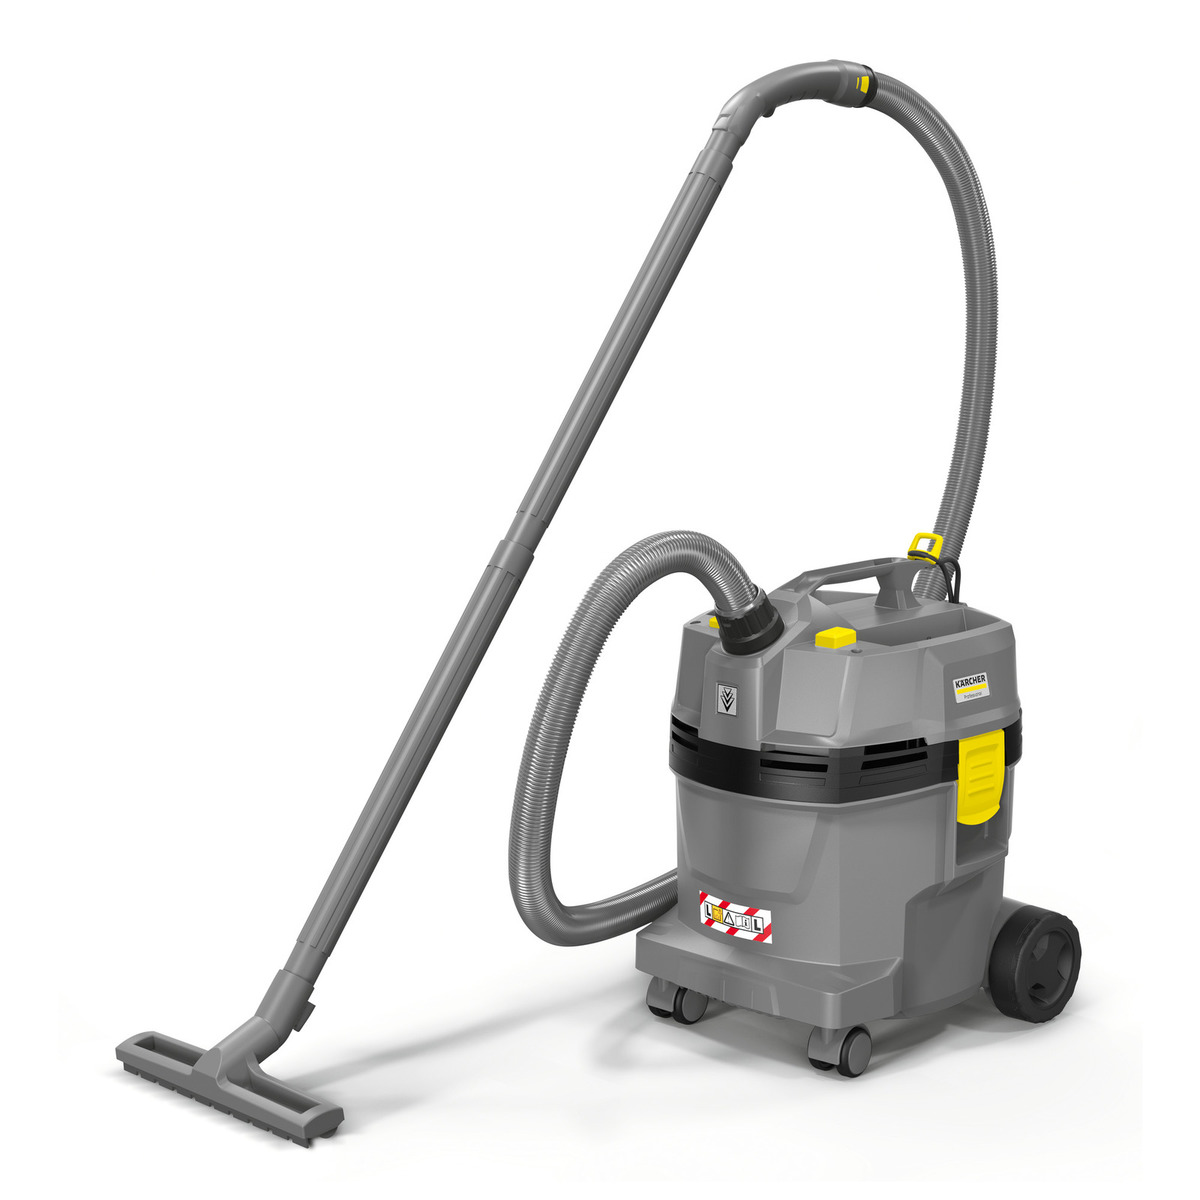 NT 22/1 Ap L *EU 1.378-600.0 KARCHER - KARCHER PREMIER CENTER